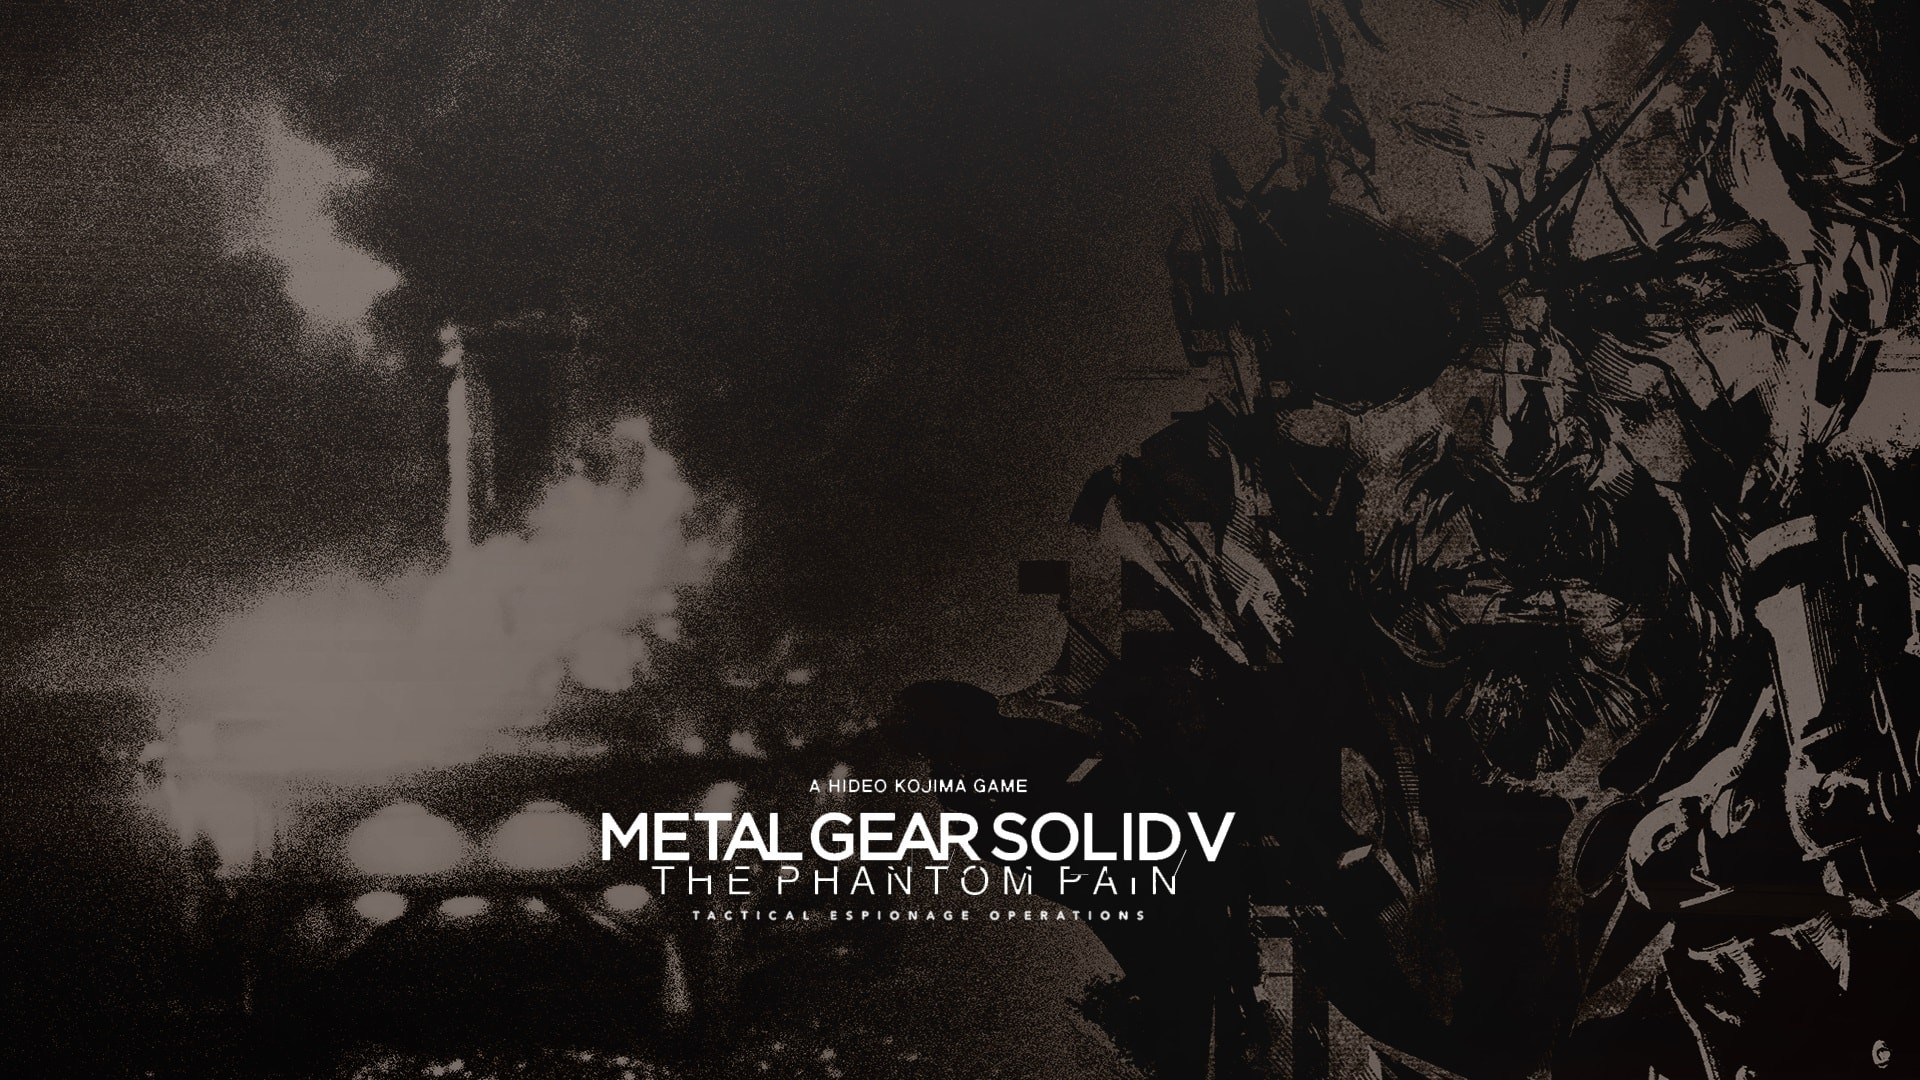 1920x1080 ... Metal Gear Solid V: The Phantom Pain Wallpapers hd